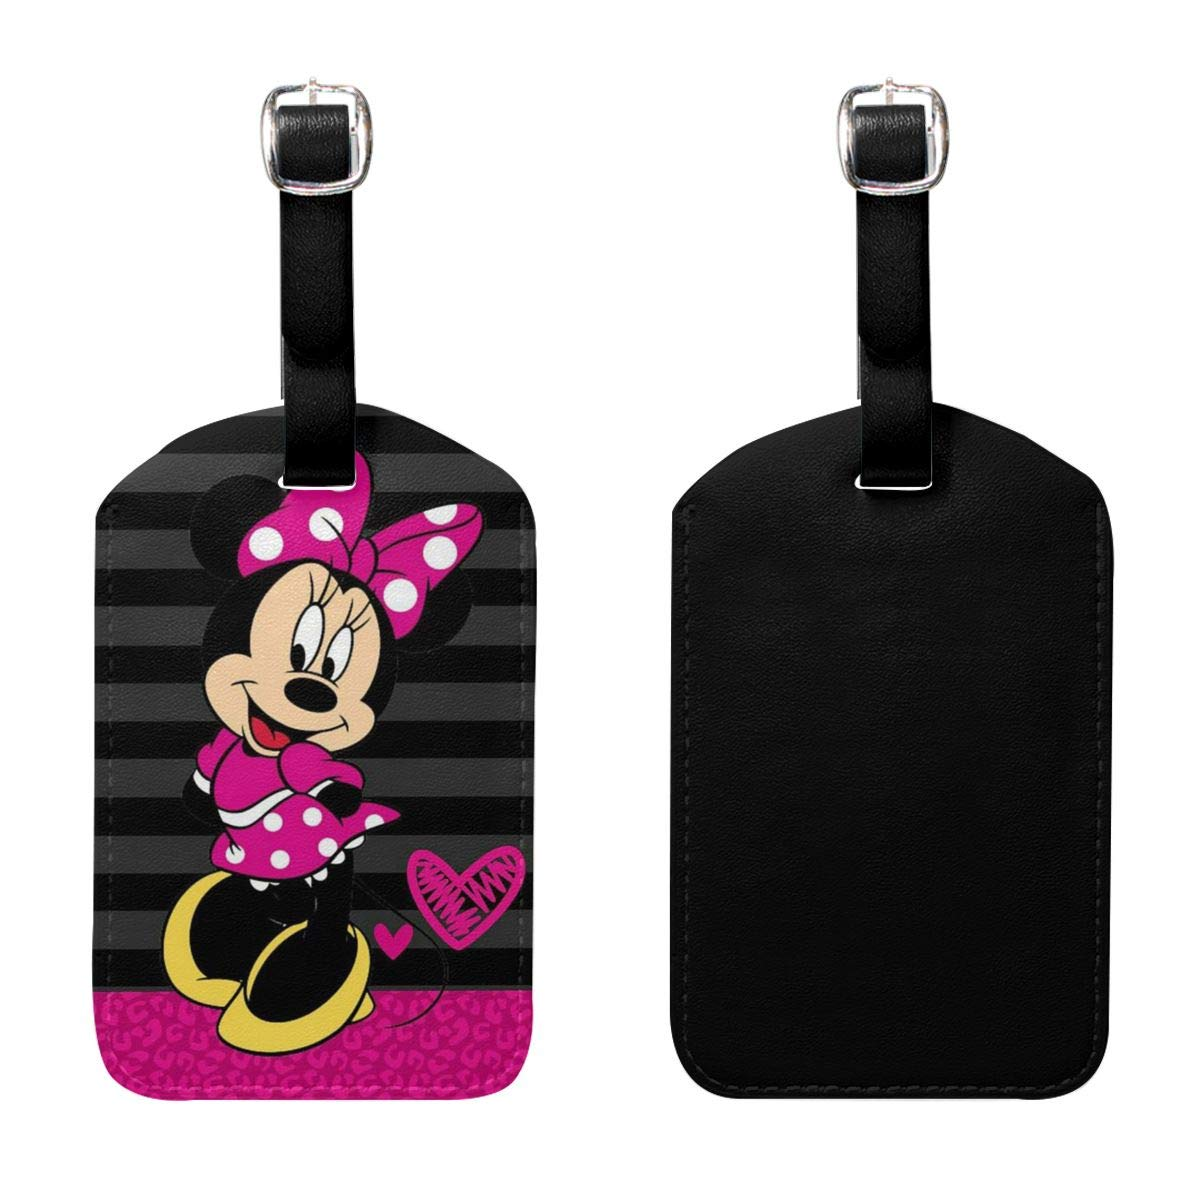 Set of 2 PU Leather Luggage Tags Cute Minnie Mouse Suitcase Labels Bag Adjustable Leather Strap Travel Accessories